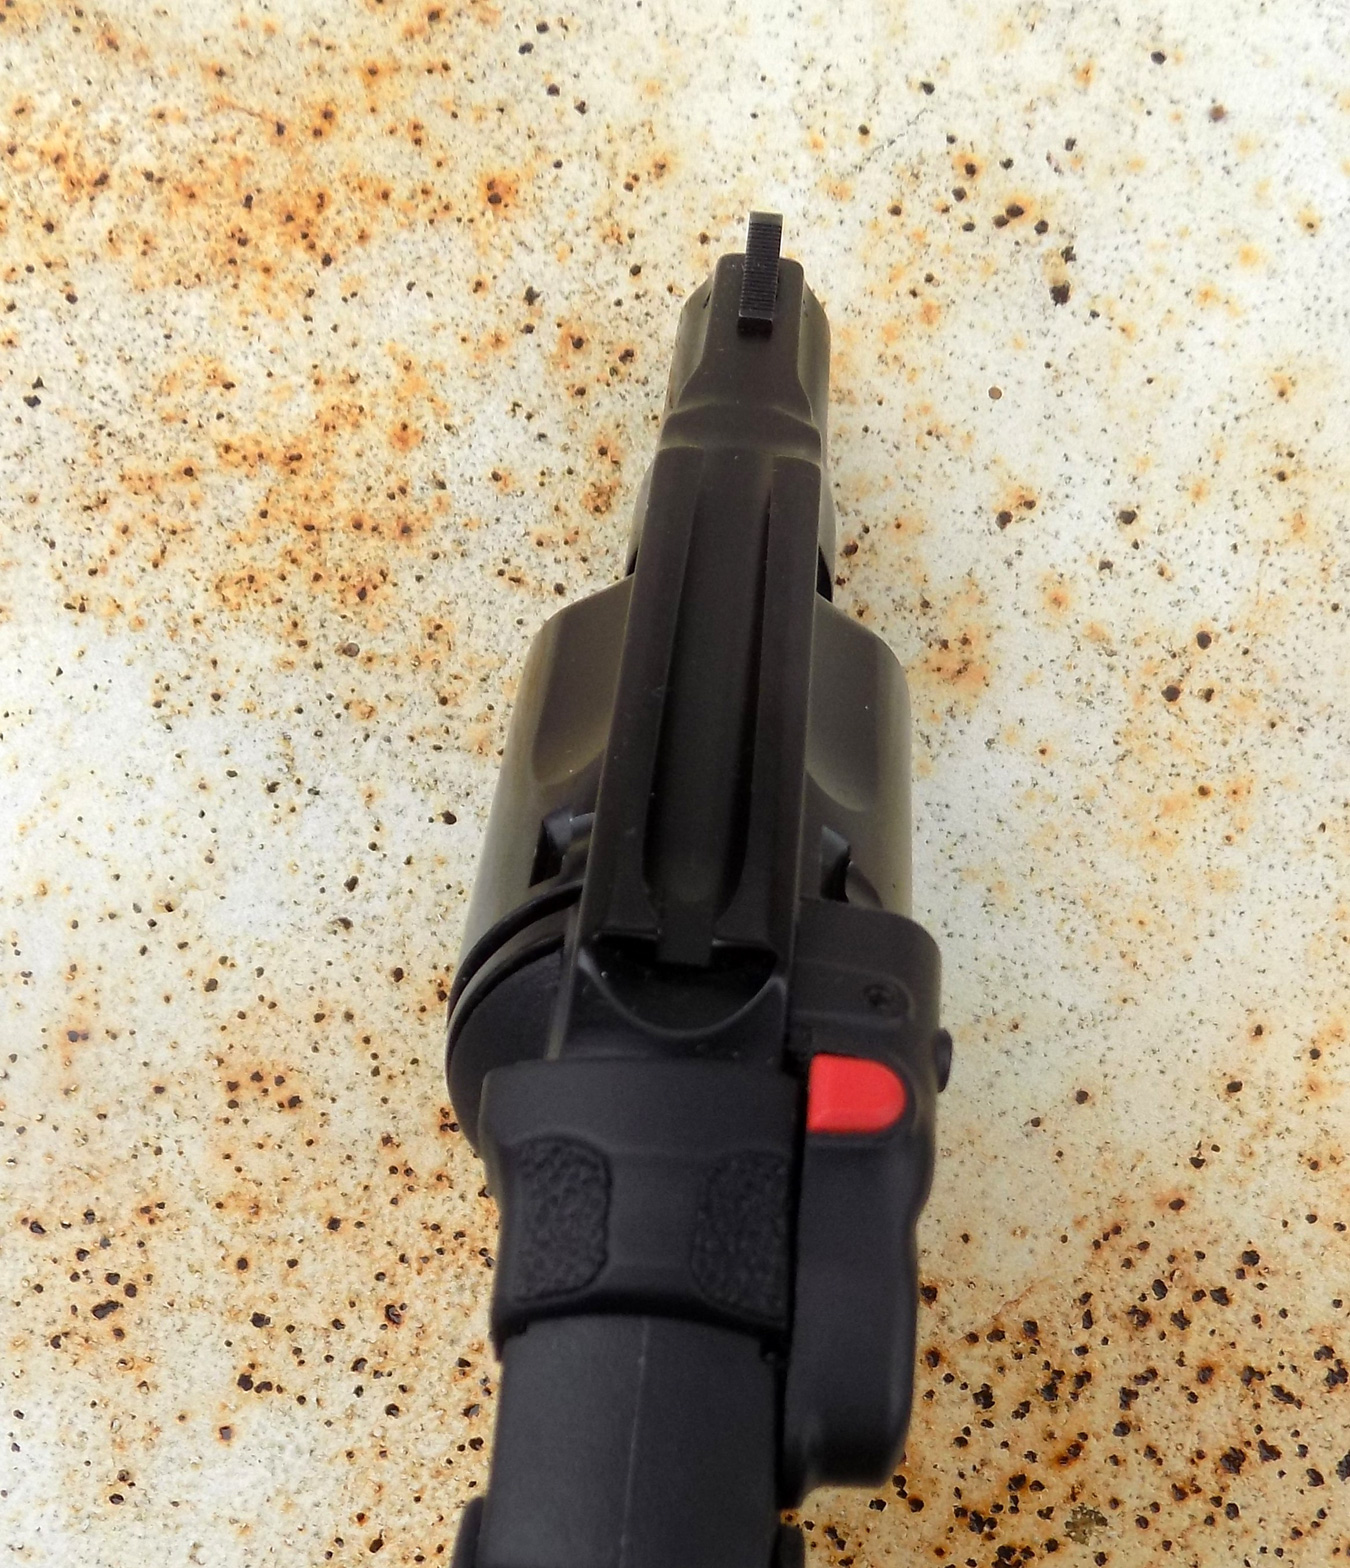 rear view of the Smith and Wesson Bodyguard relover with Crimson Trace laser installed